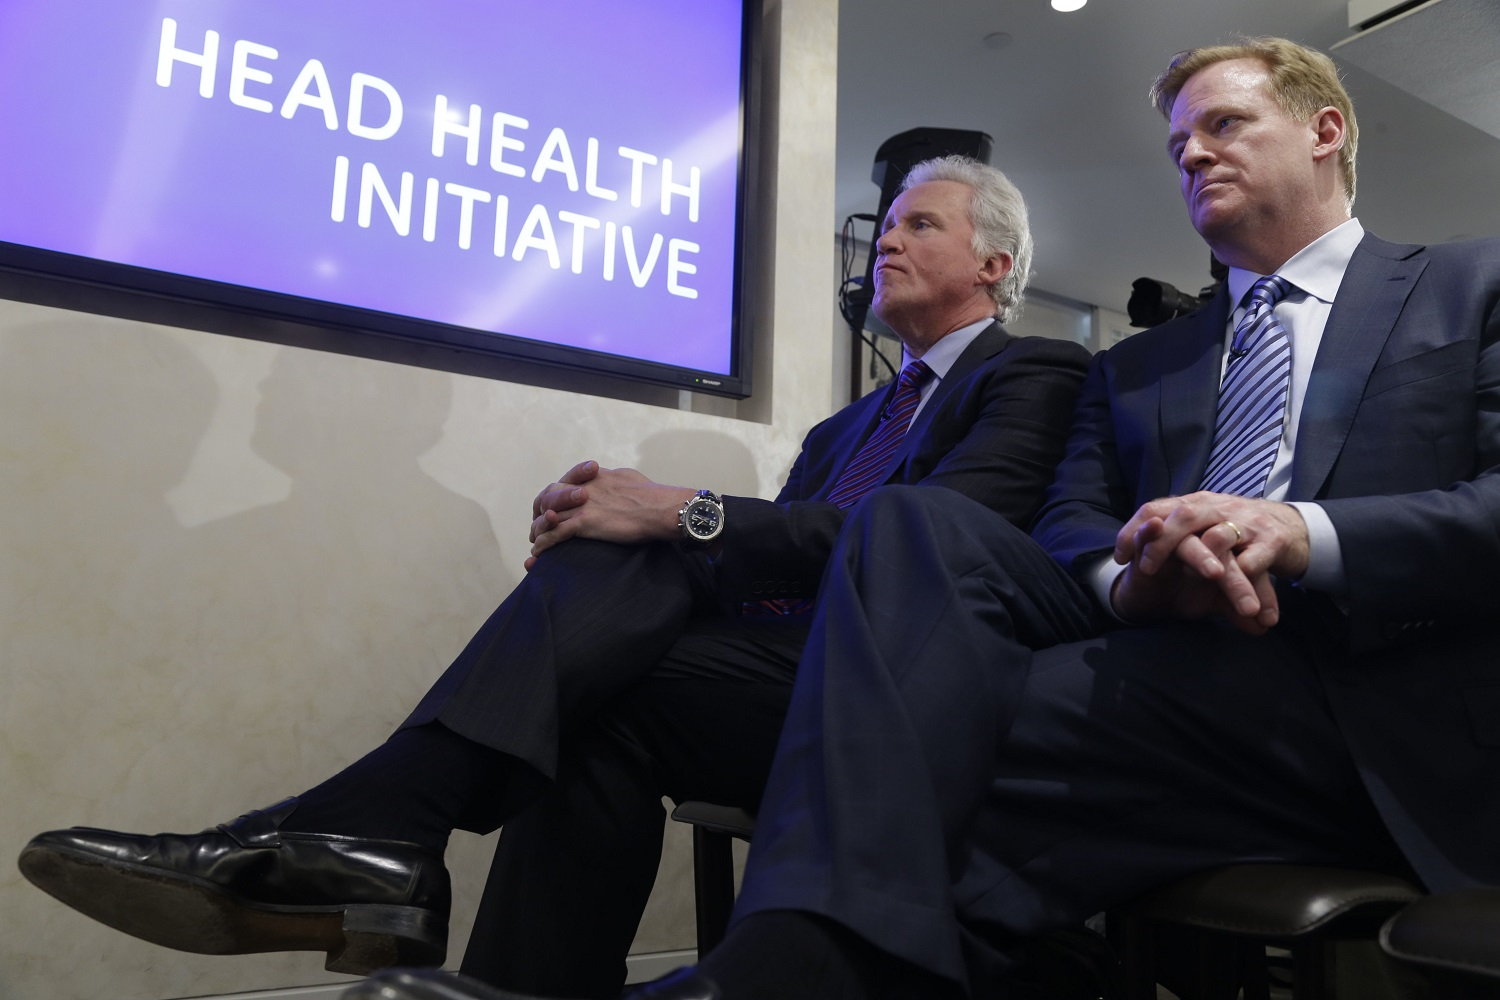 "FILE - In this March 11, 2013, file photo, Chairman and CEO of General Electric, Jeff Immelt, left, and NFL Commissioner Roger Goodell listen during a news conference in New York, about GE partnering with the NFL, the US Military, and others to further research on head injuries. Commissioner Goodell enters his second decade in charge on Thursday, Sept. 1, 2016. A few years into Goodell's tenure as NFL commissioner, a grad school professor polled students on who was the most effective leader in the major sports. Goodell romped.  That was before the league locked out the players in 2011. Before the Saints' bounties scandal. Before the behavior of Ray Rice and Adrian Peterson _ and so many others _ led to a stricter player conduct policy.  Before game officials were locked out. Before Tom Brady's suspension in ""Deflategate."" And before issues over head trauma and concussions brought player safety questions to the forefront.  (AP Photo/Seth Wenig, File)"